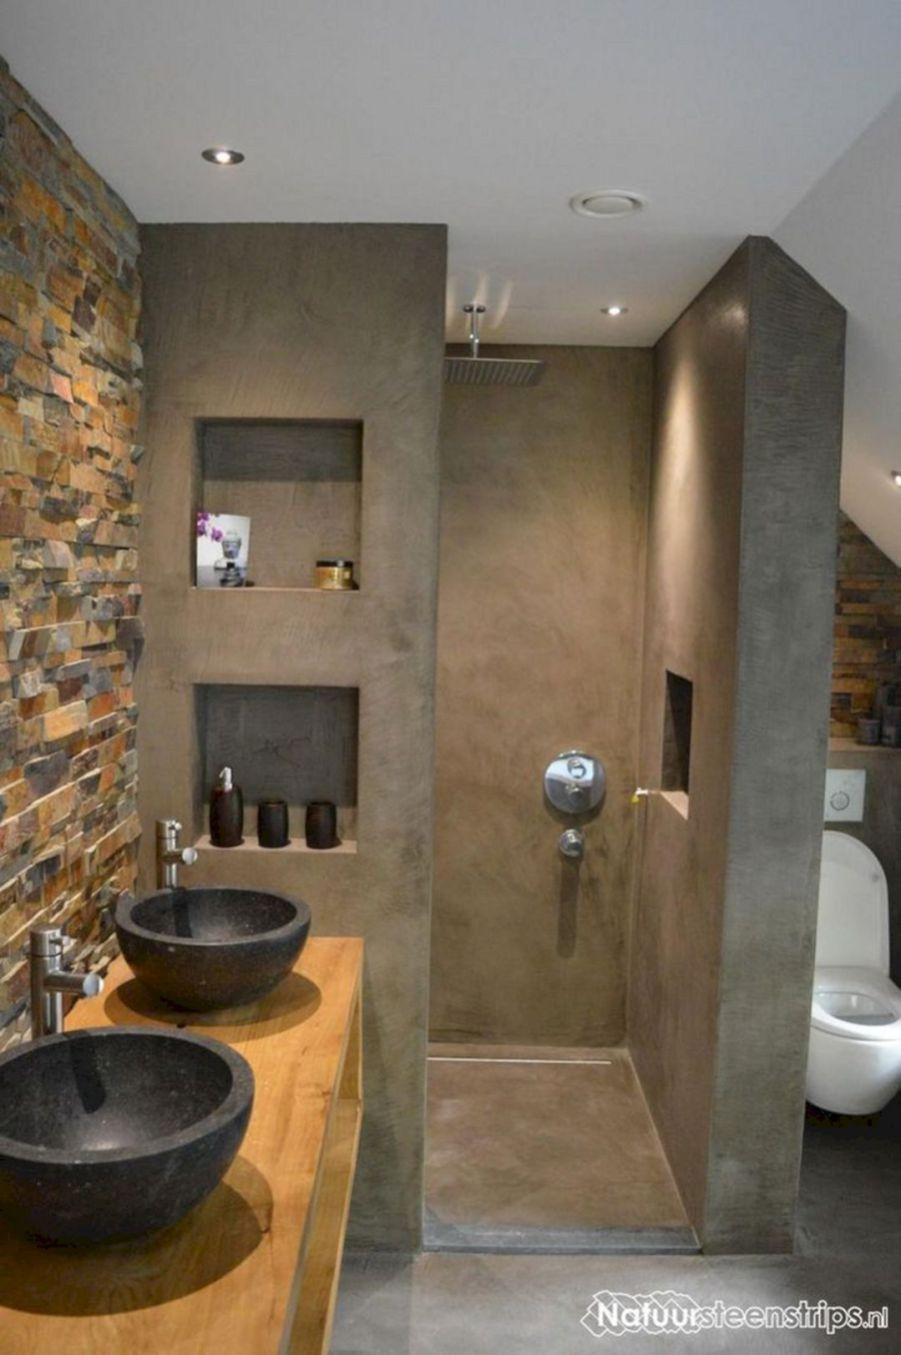 115 Extraordinary Small Bathroom Designs For Small Space With Images Bathroom Design Small Small Bathroom Small Bathroom Inspiration